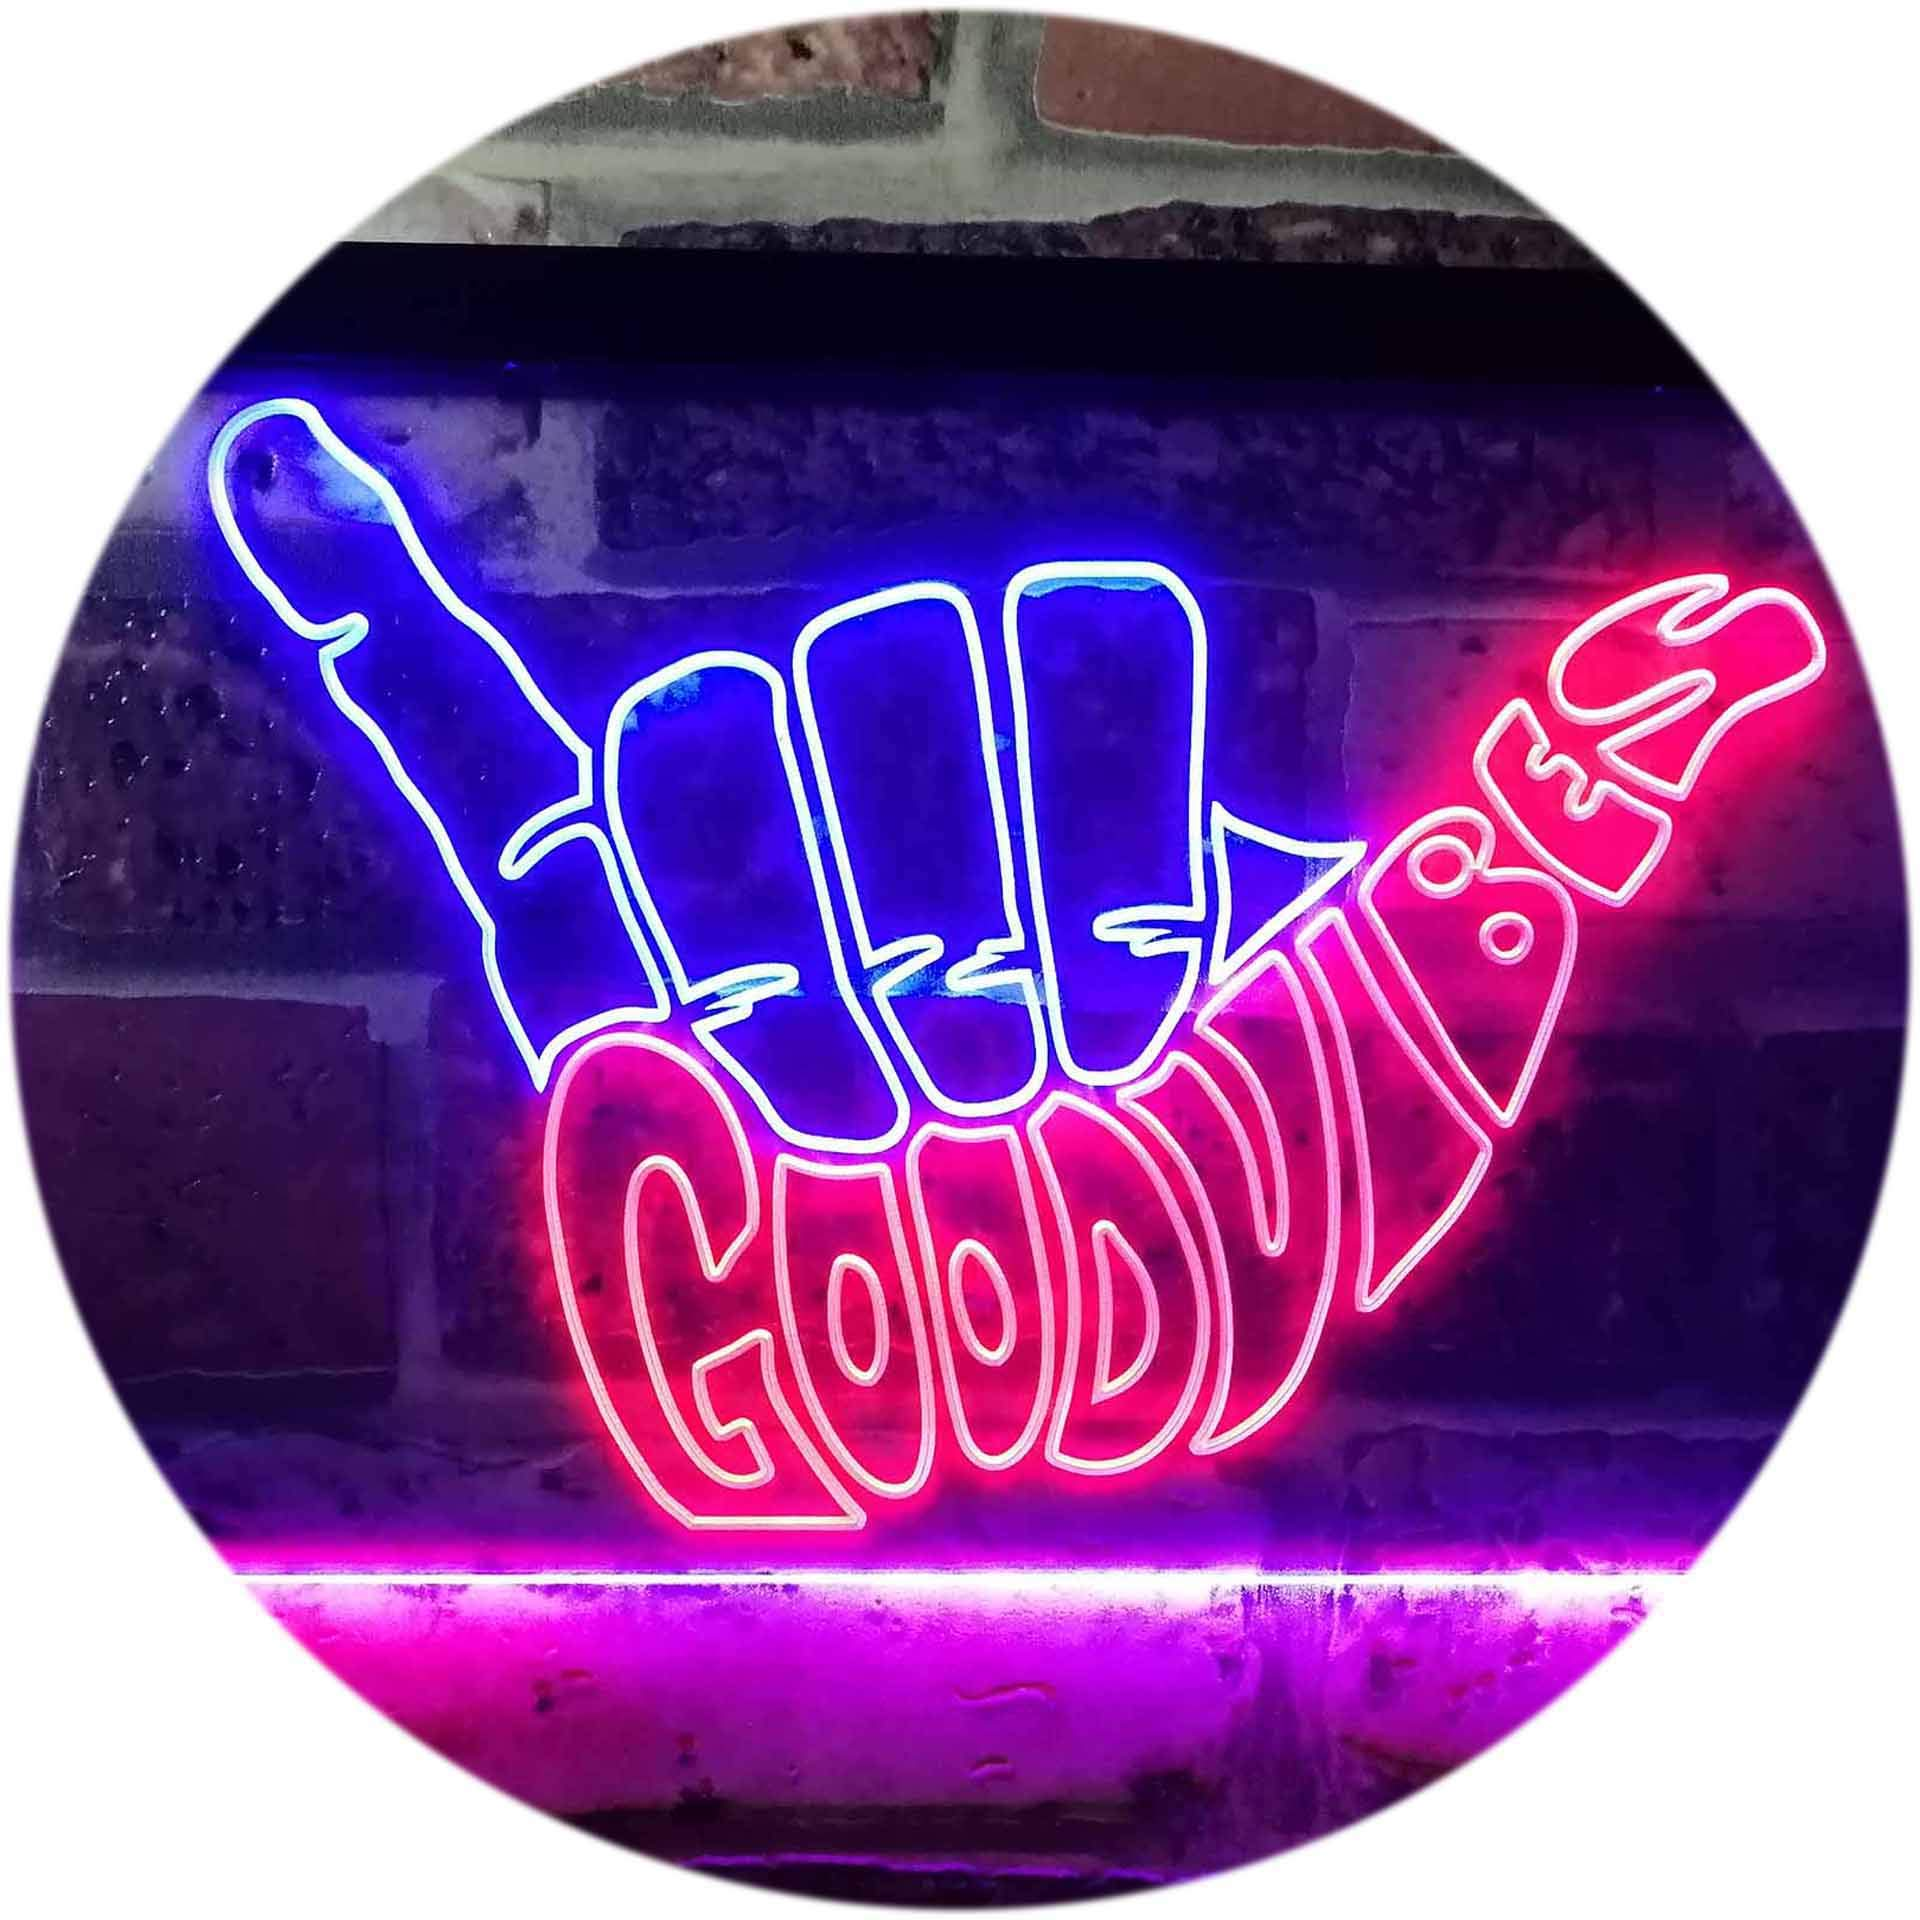 ADVPRO Good Vibes Only Hand Party Decoration Dual Color LED Neon Sign Red & Blue 16'' x 12'' st6s43-i1076-rb